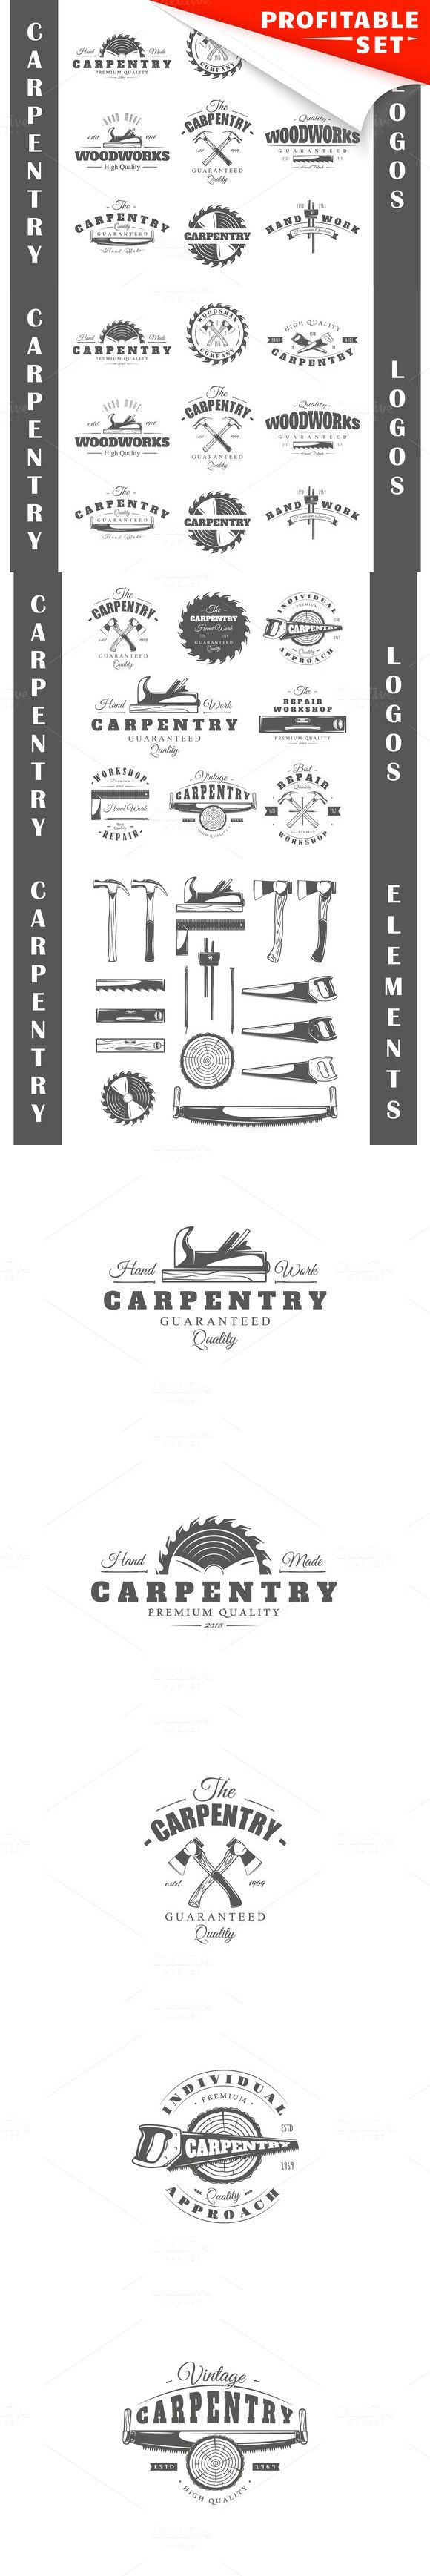 17 Carpentry logos templates. Premium Icons. $17.00